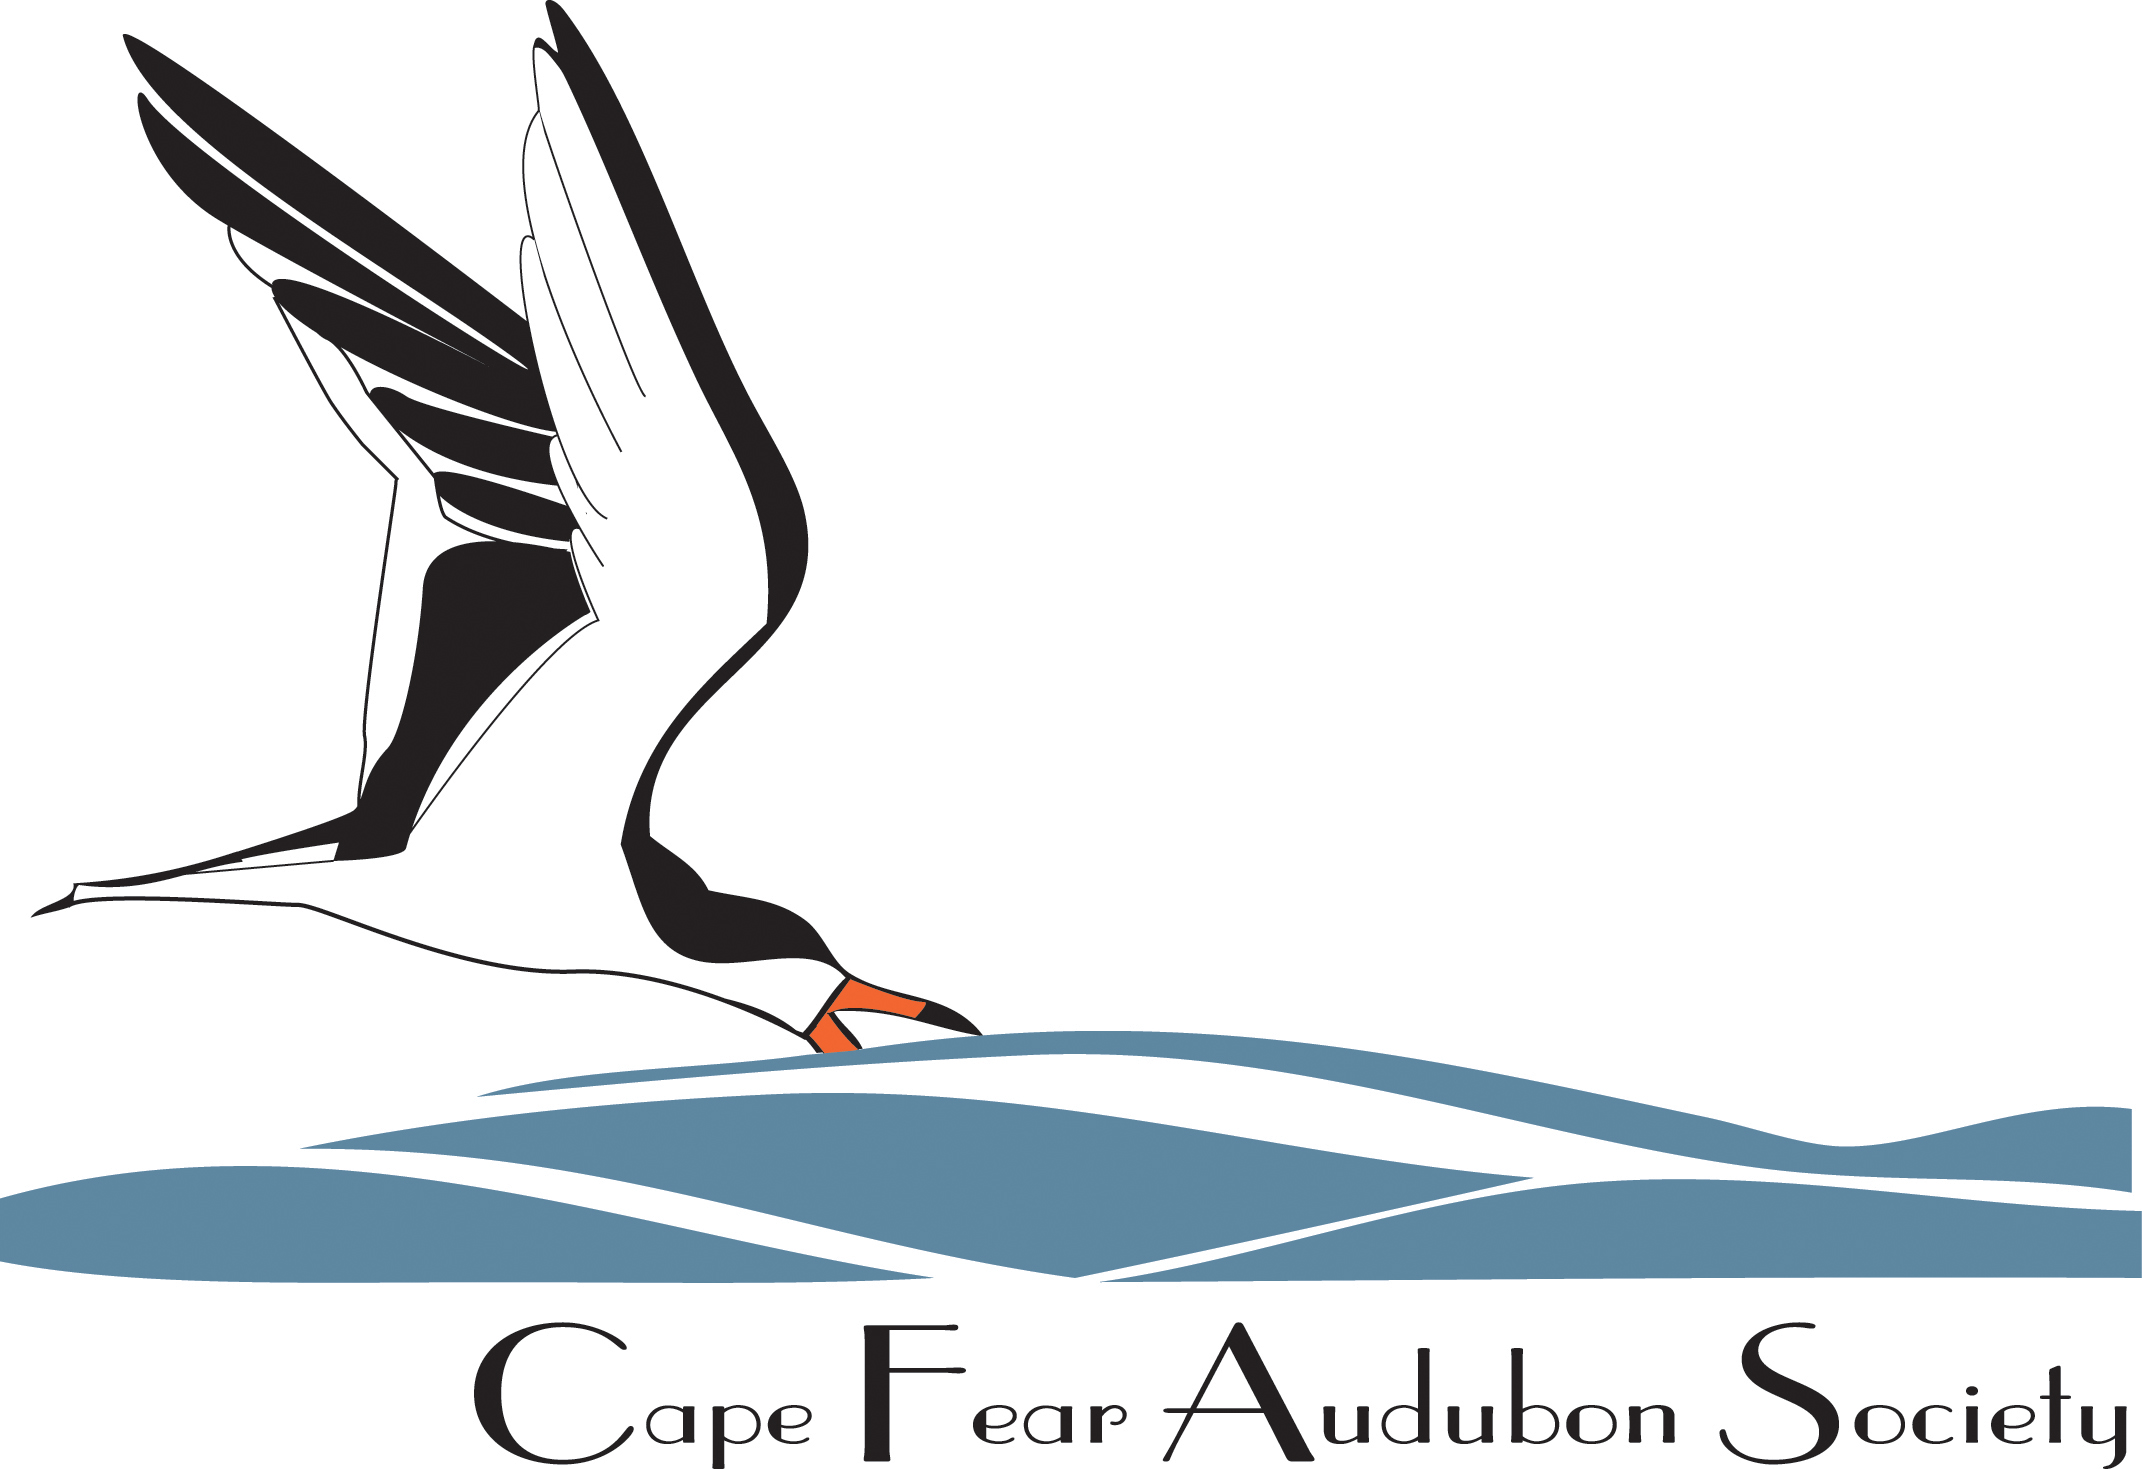 Cape Fear Audubon Society logo